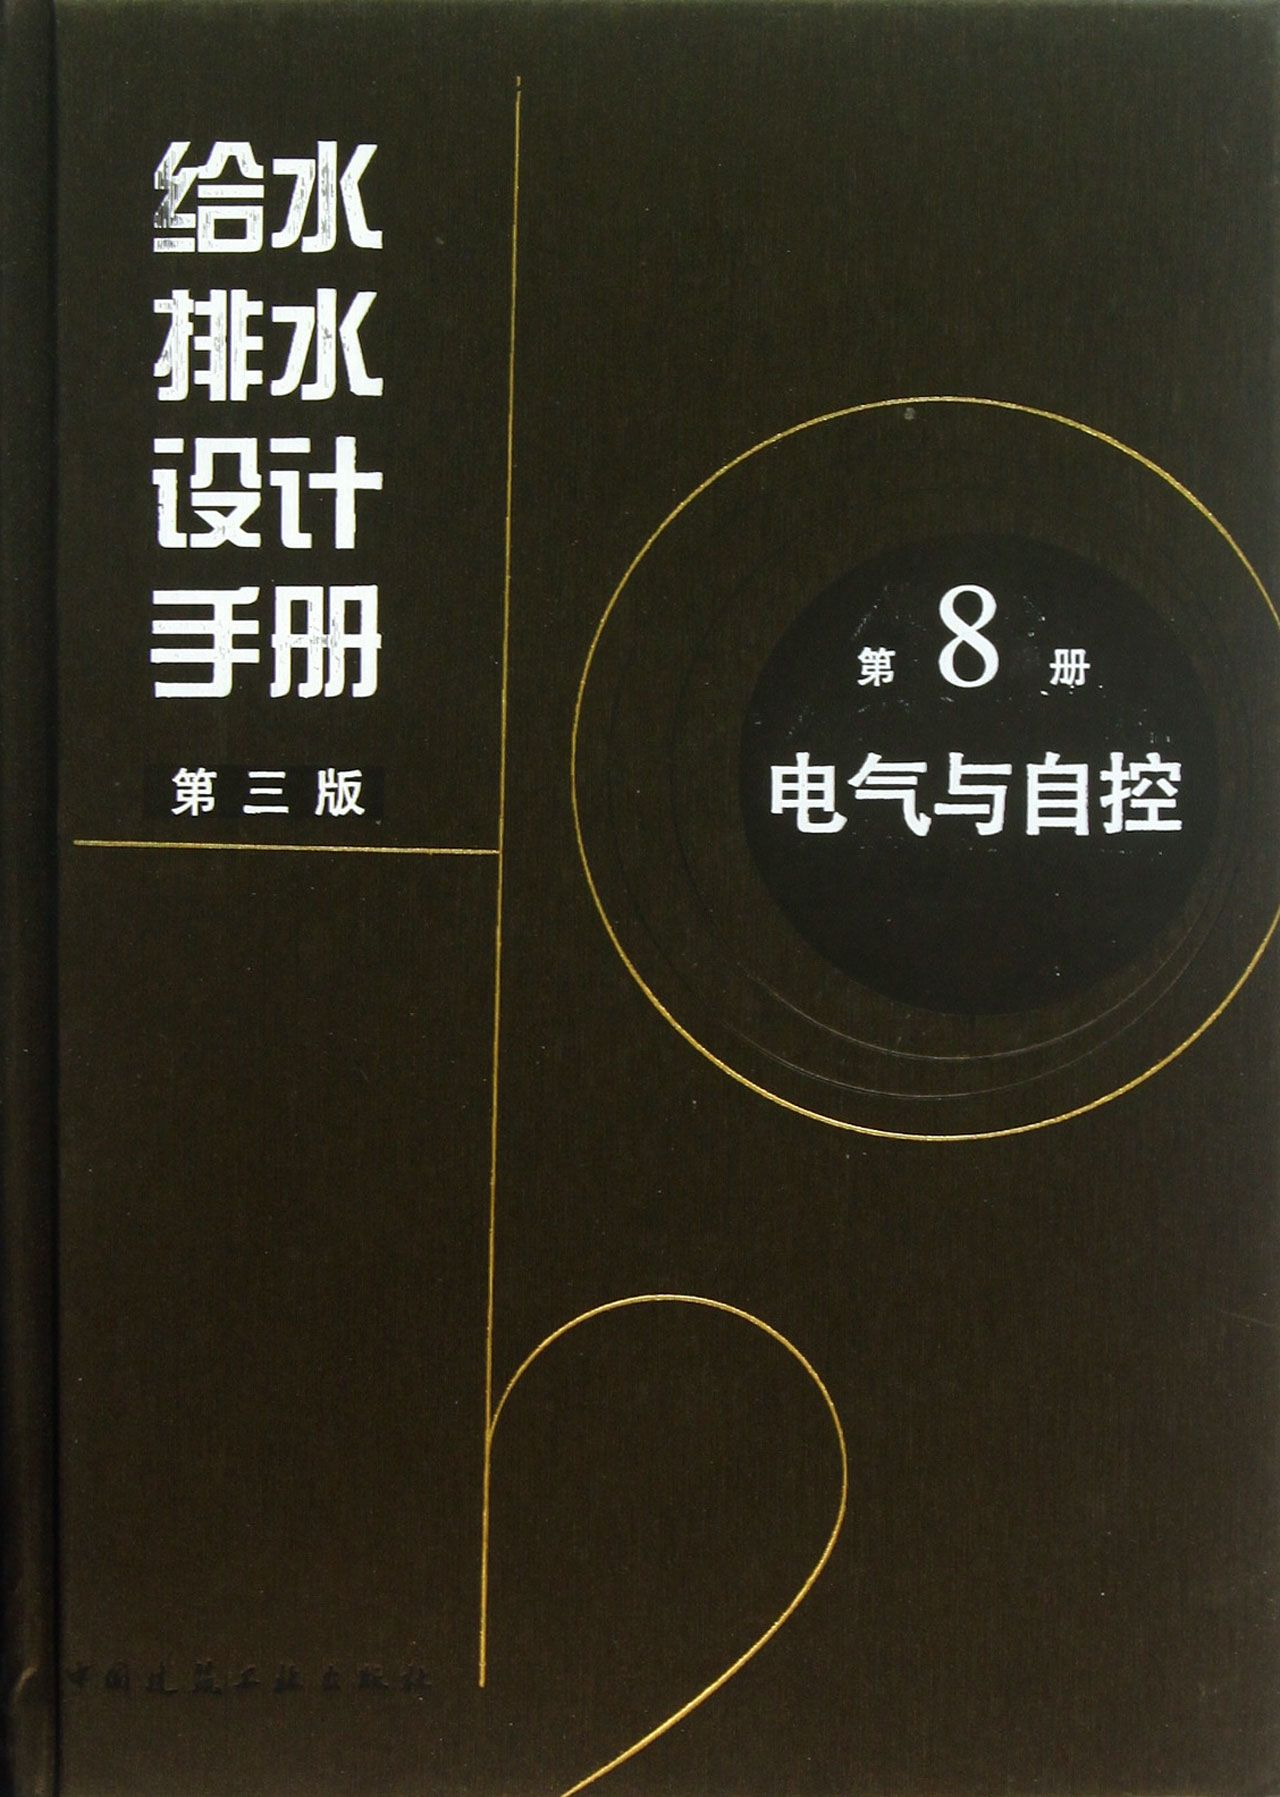 Water supply and drainage design manual (8th volumes of electrical and automation 3rd edition) (fine) wang jiang rong// Sue new book